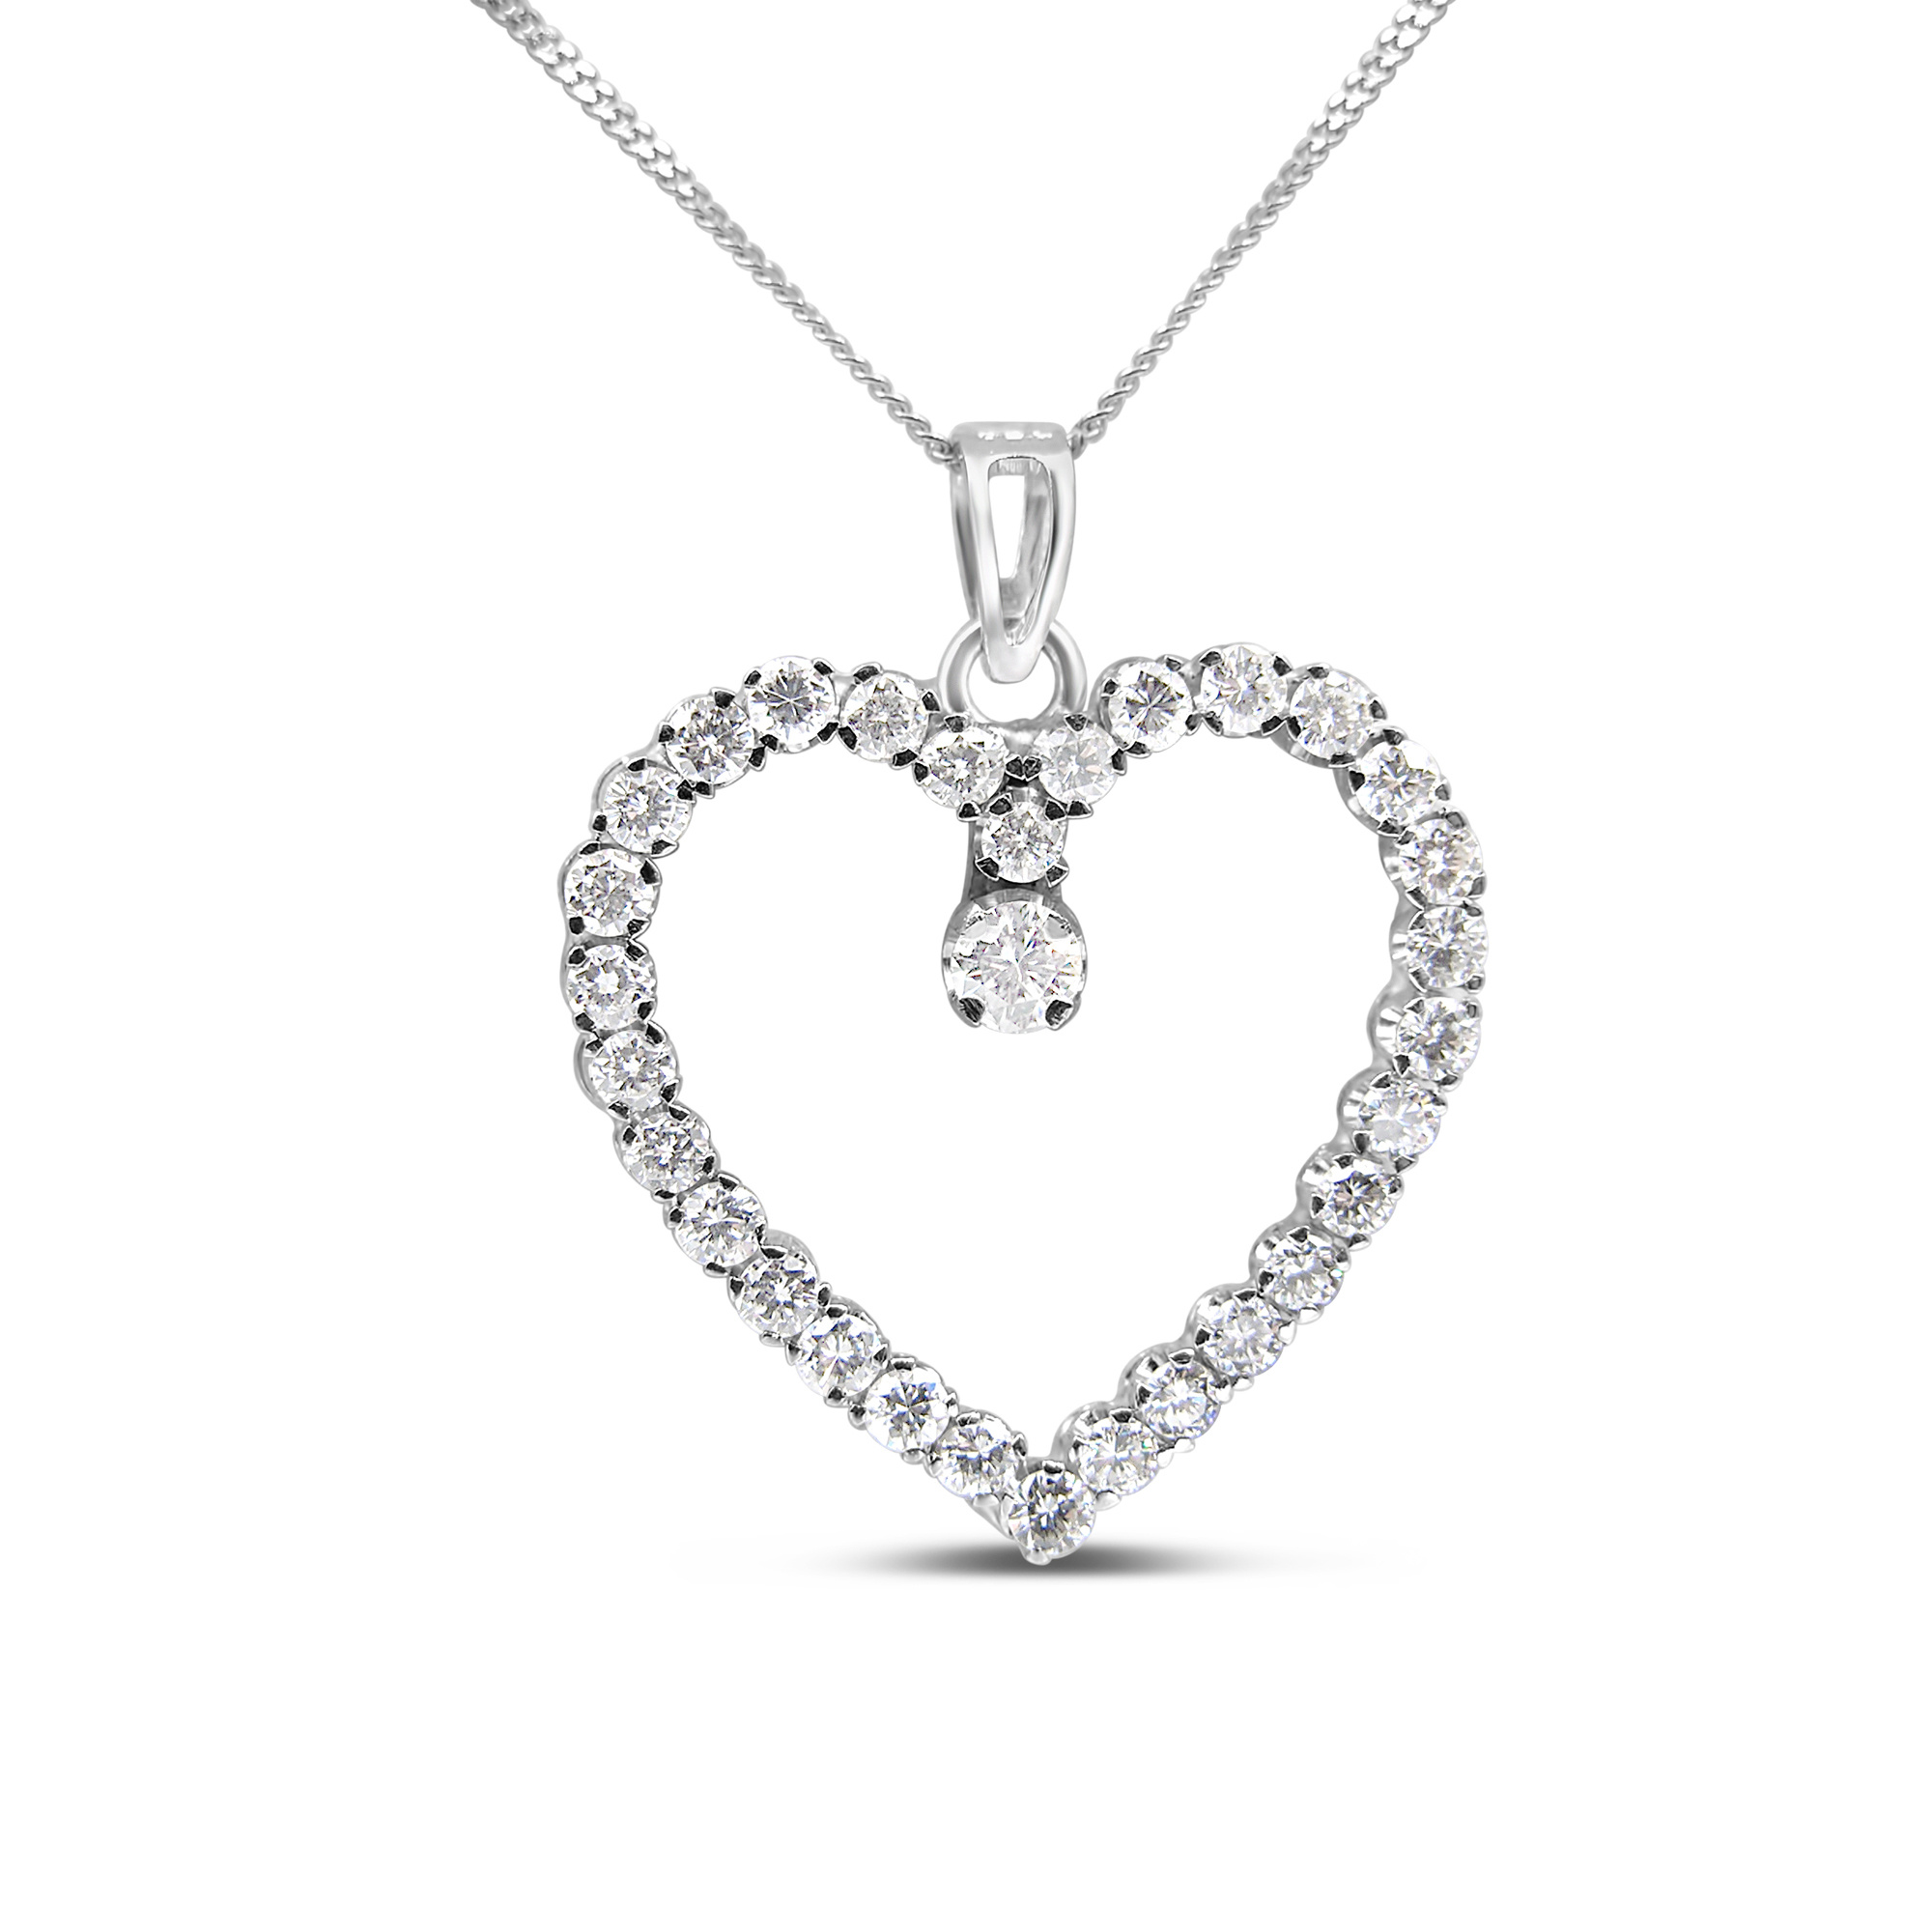 18kt white gold heart pendant with 2.12 ct diamonds